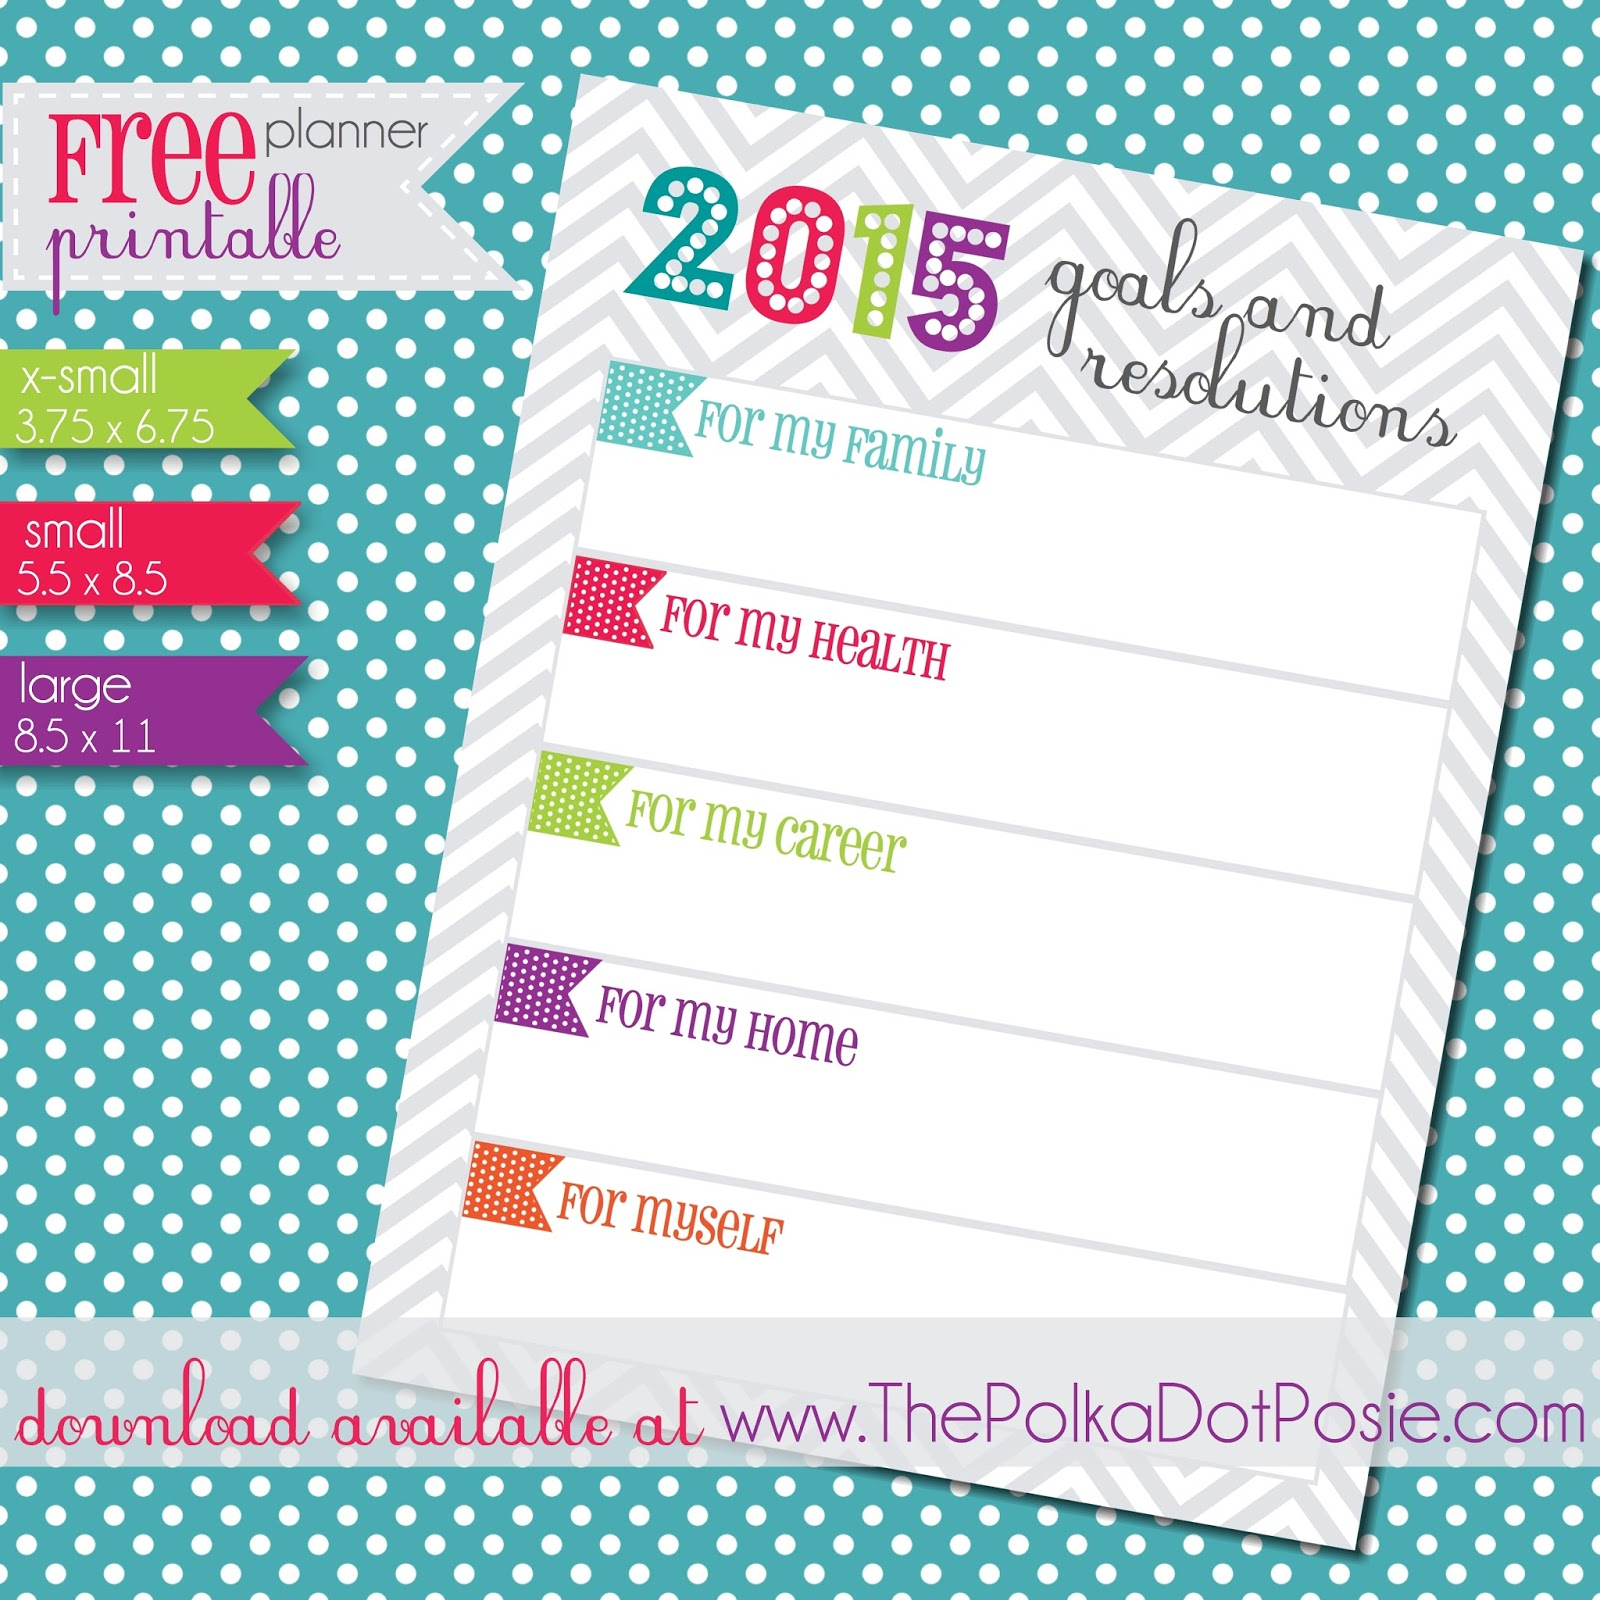 The Polka Dot Posie Goals Amp Resolutions Our New Shop Goal Amp A Free Printable To Start The